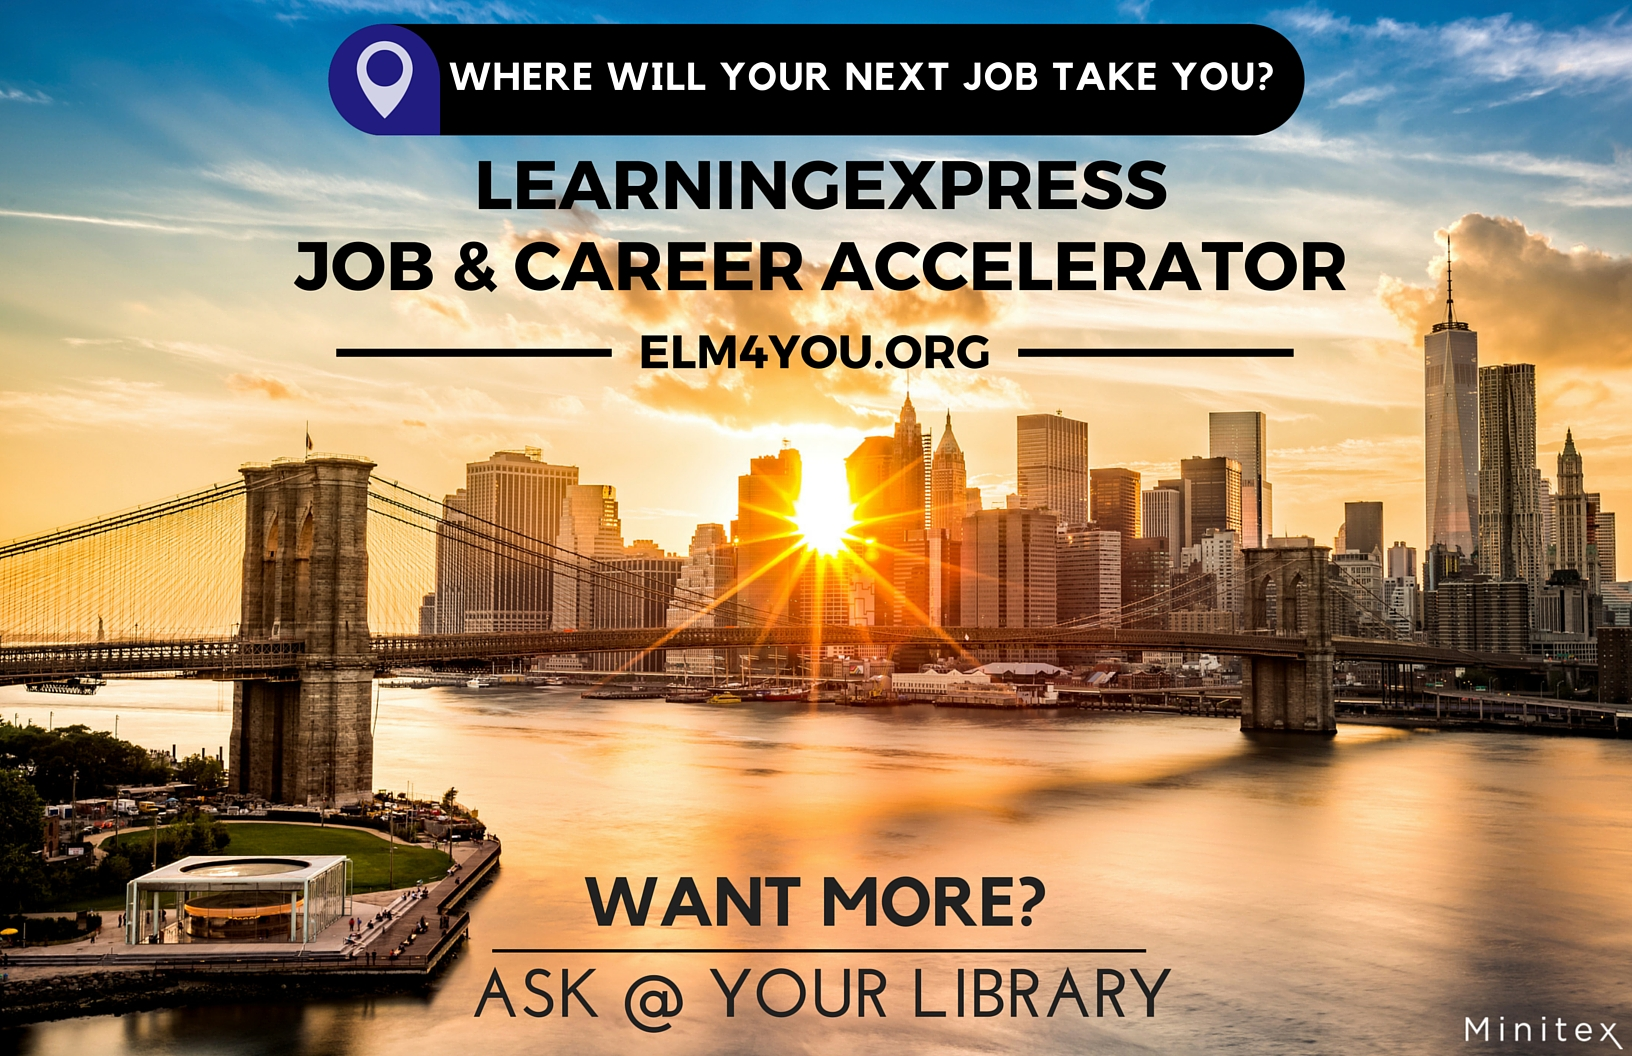 LearningExpress Job & Career Accelerator